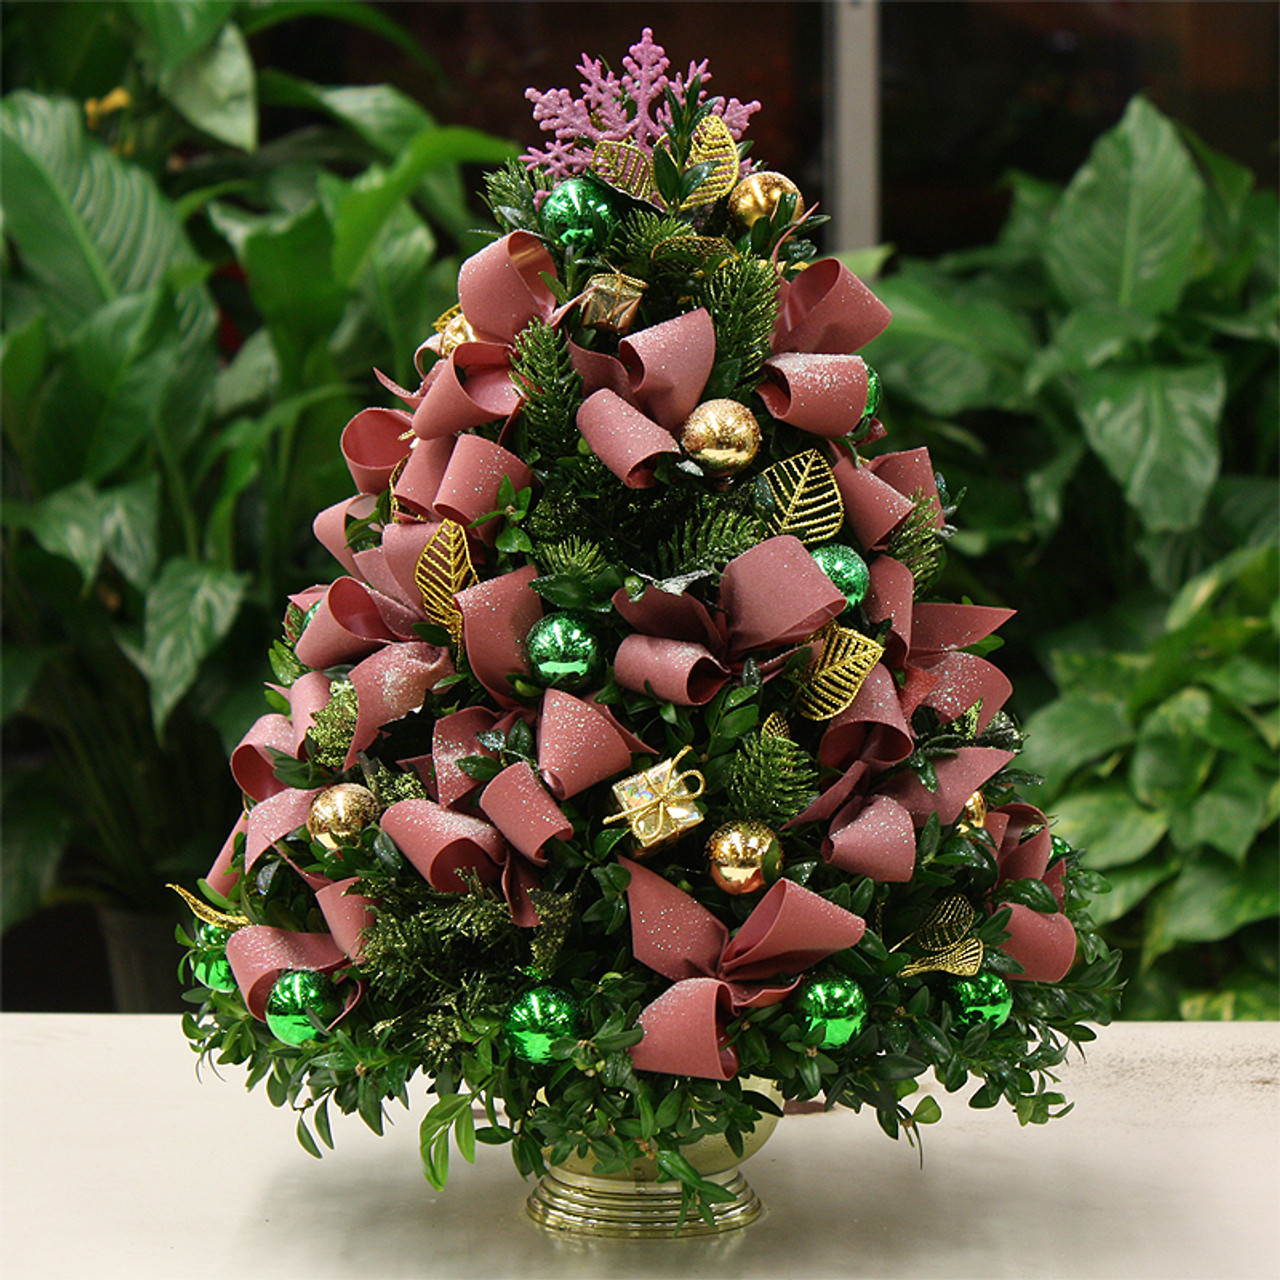 Christmas Cheer.Christmas Cheer Boxwood Tree